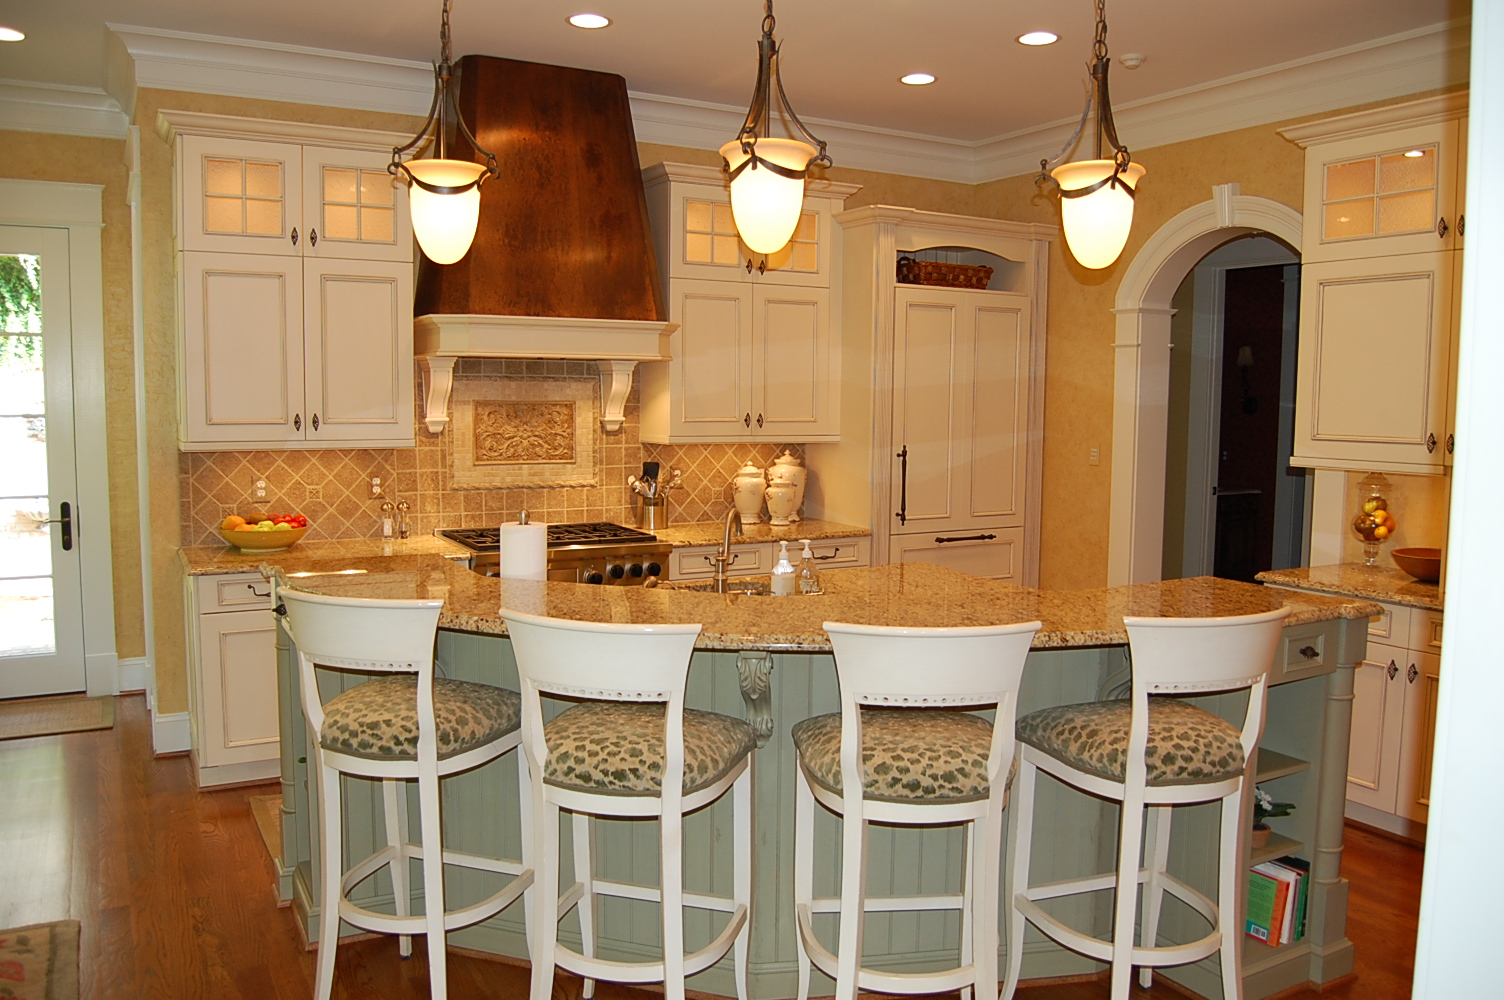 Kitchen Archives - Page 6 of 6 - Classic Kitchens of Virginia